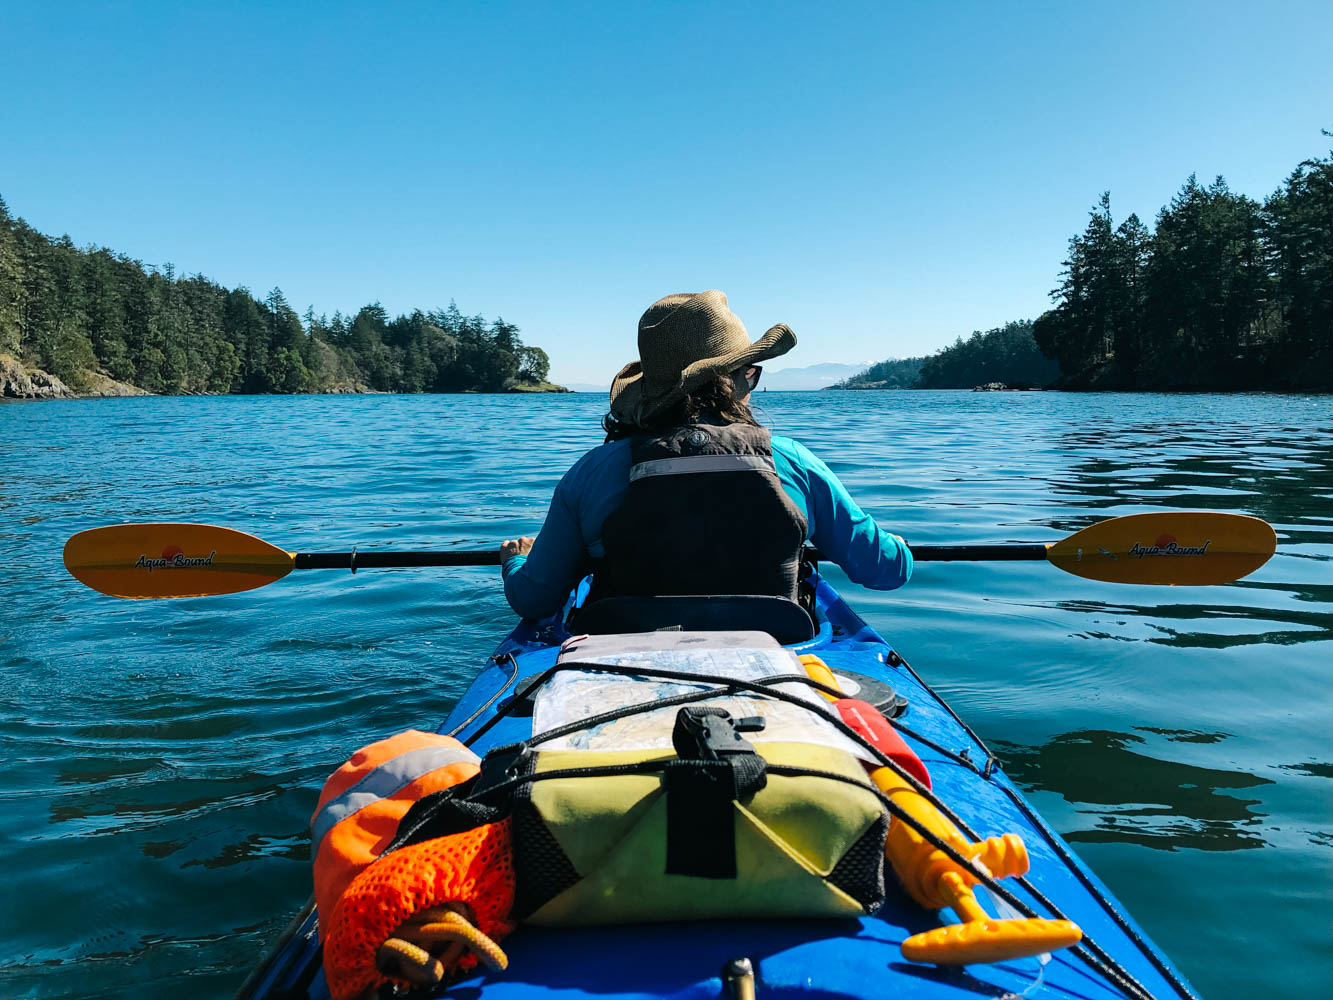 Mathilde and I when on a paddling date. It was so beautiful, seals were playing hide and seek around our kayak, a trumpeter swan landed beside us and a bald eagle took flight nearby. We could even see the snowy peaks of Olympic National Park in the US in front of us.